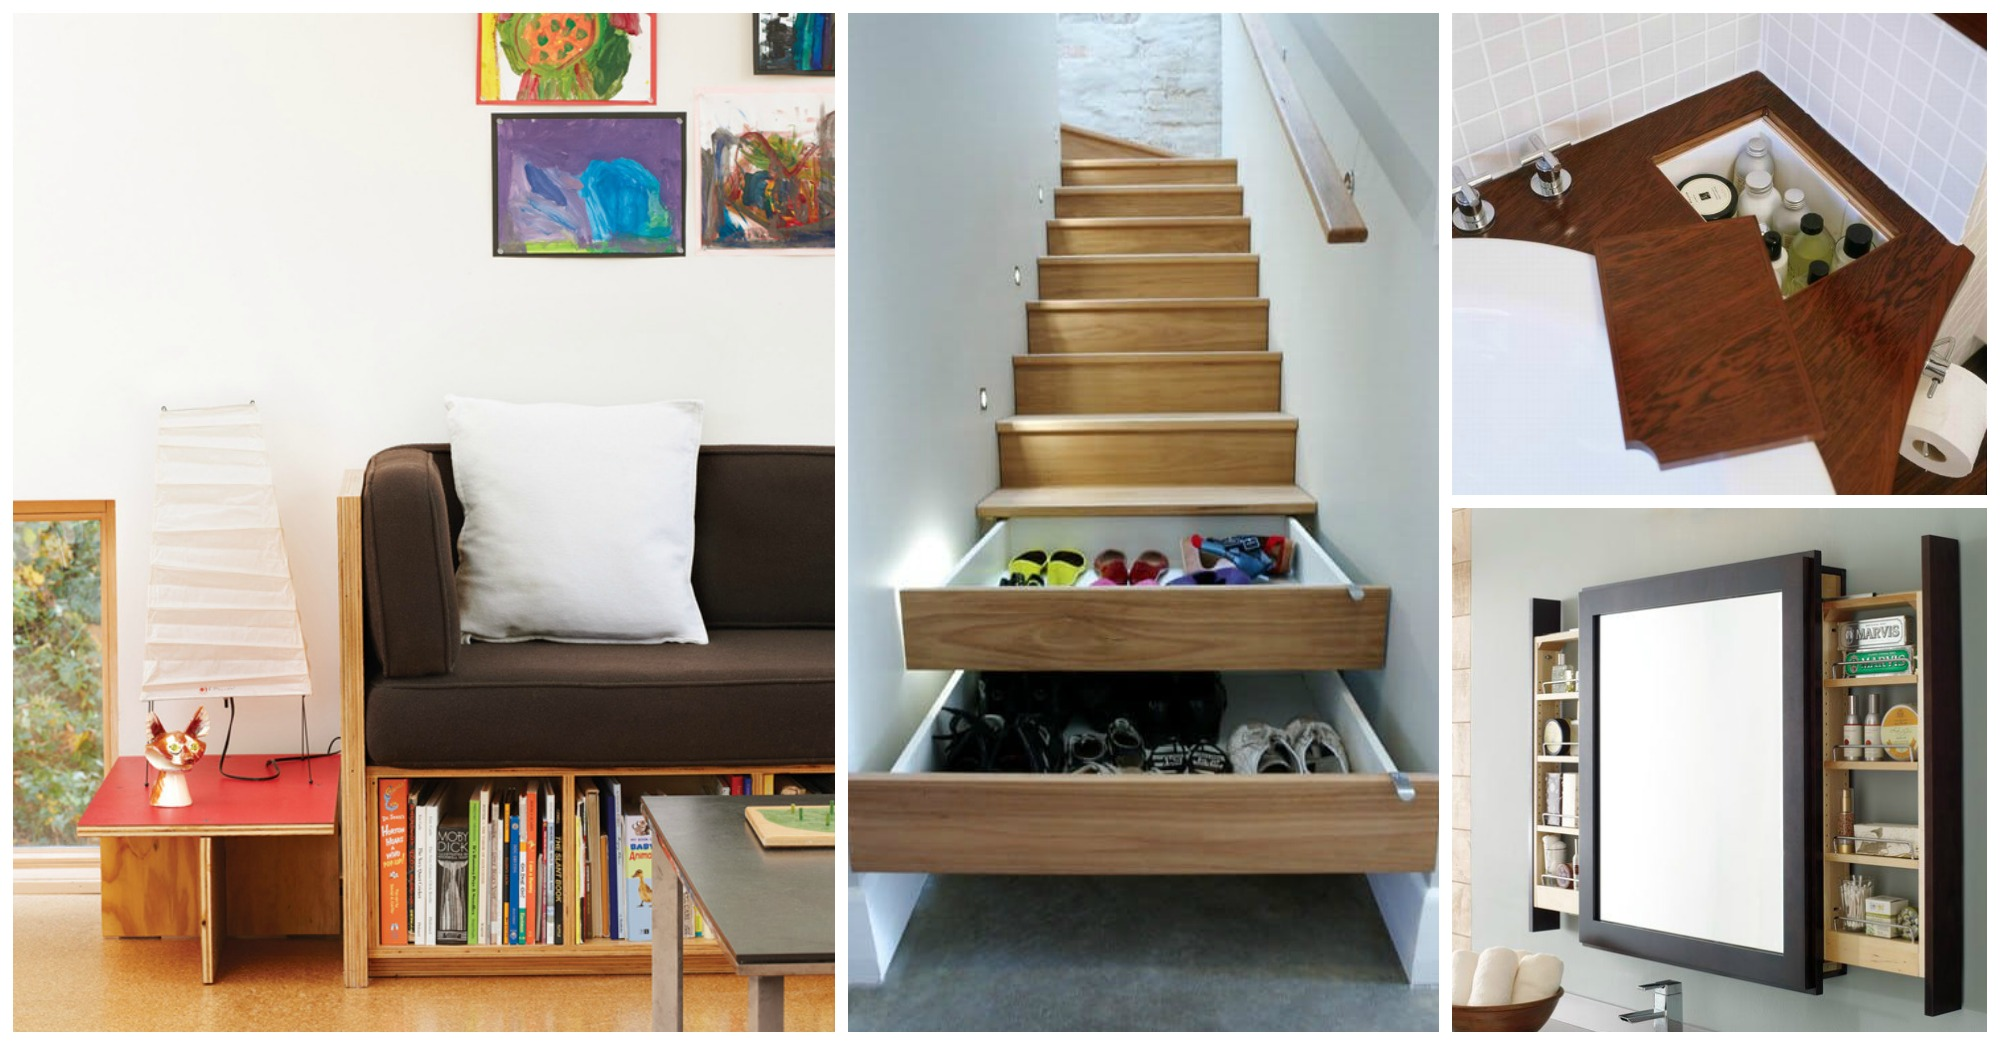 10 Storage Hacks for Small Homes